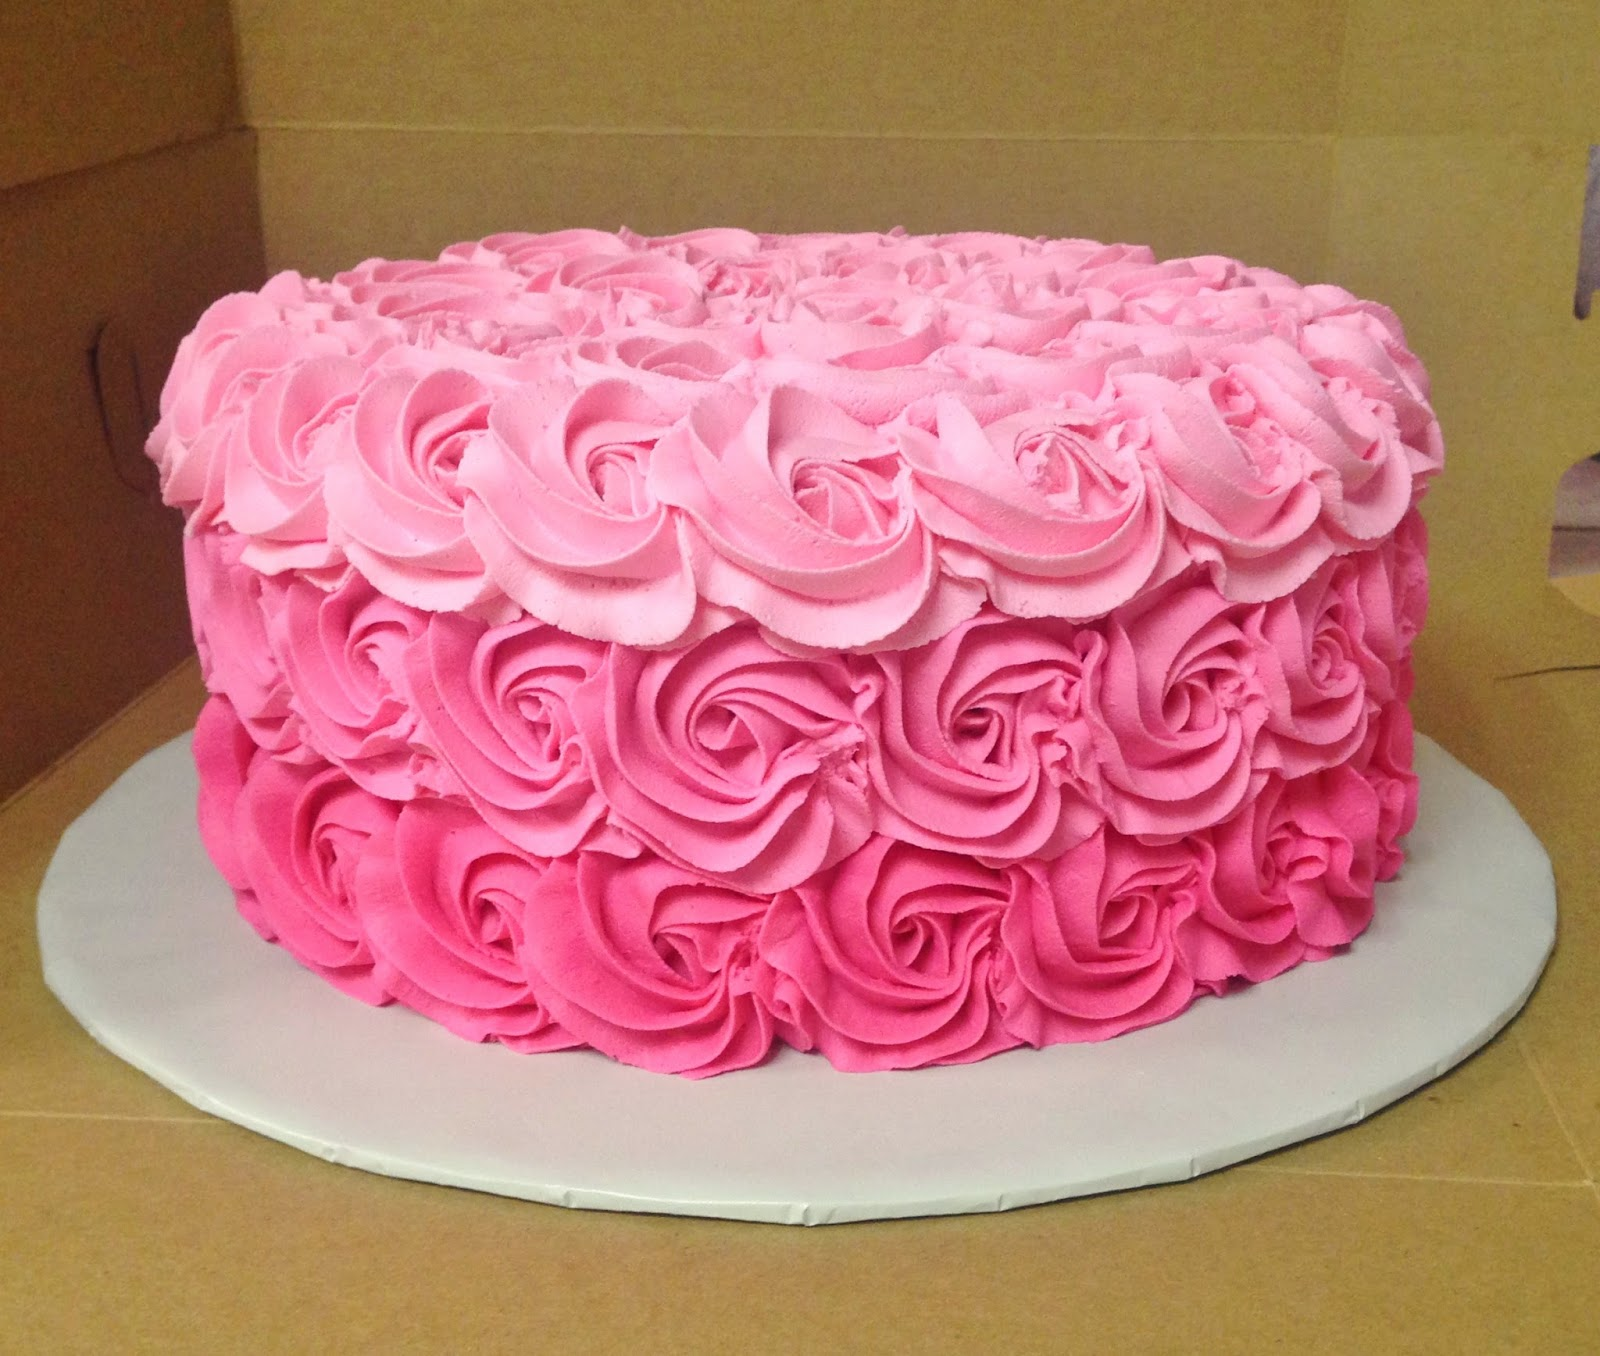 Pin Rosette Sheet Cake Cakes Cake On Pinterest